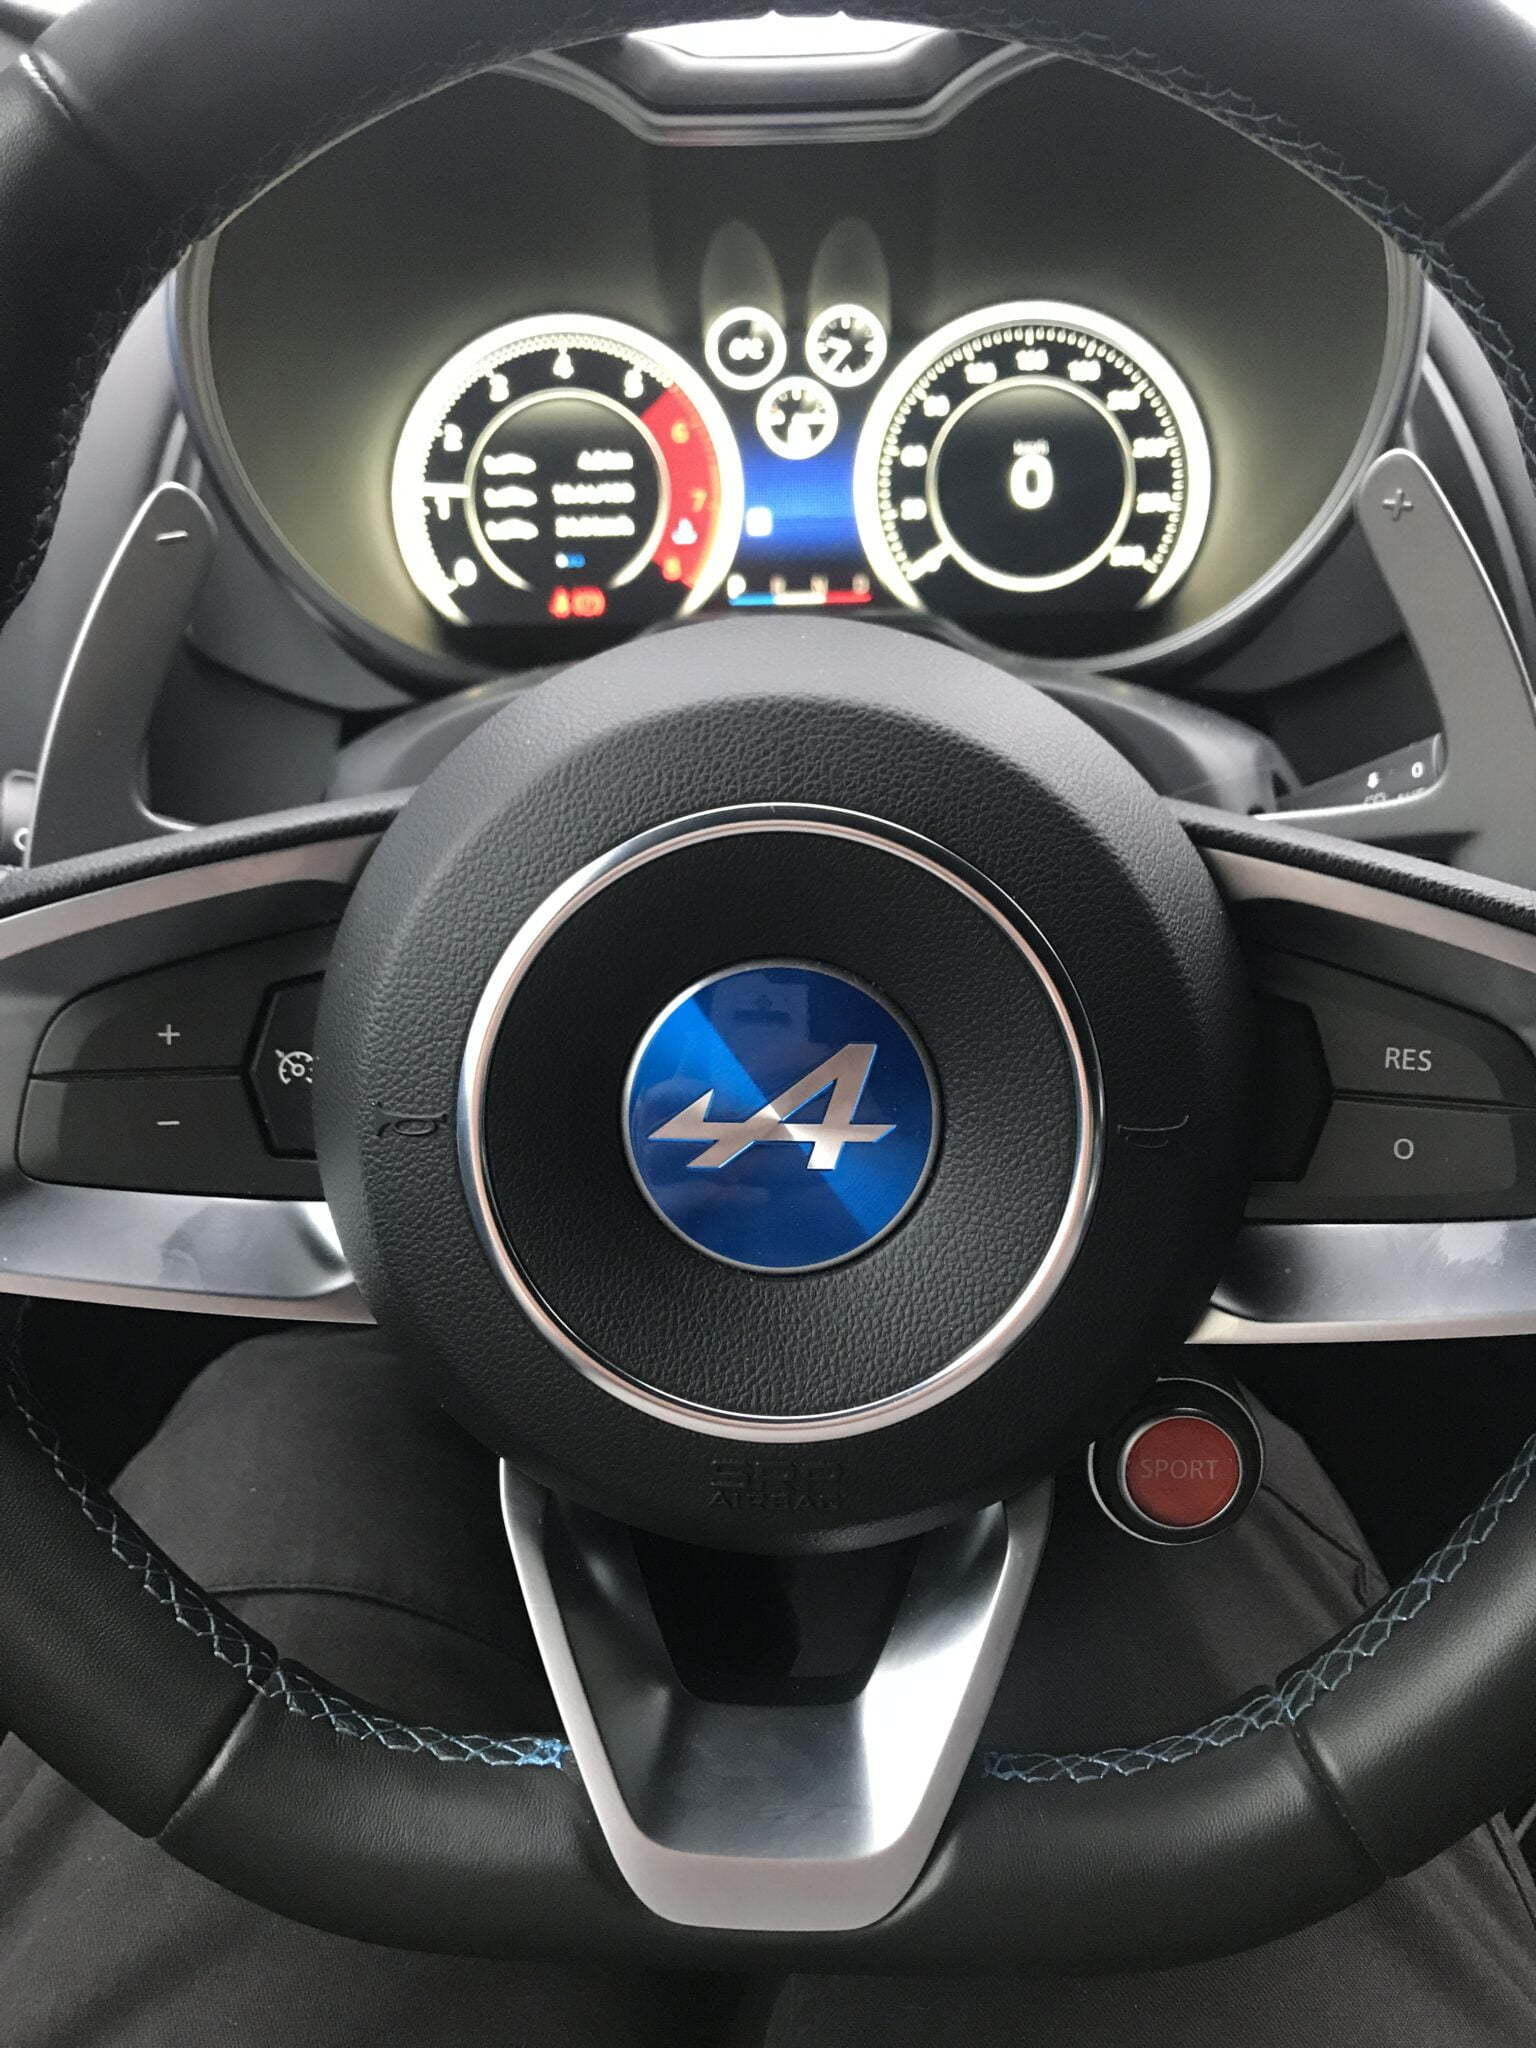 0A21D88D 025B 4108 8DC8 390A5A0DFF3A | A l'essai : Alpine A110, des sensations Pures.